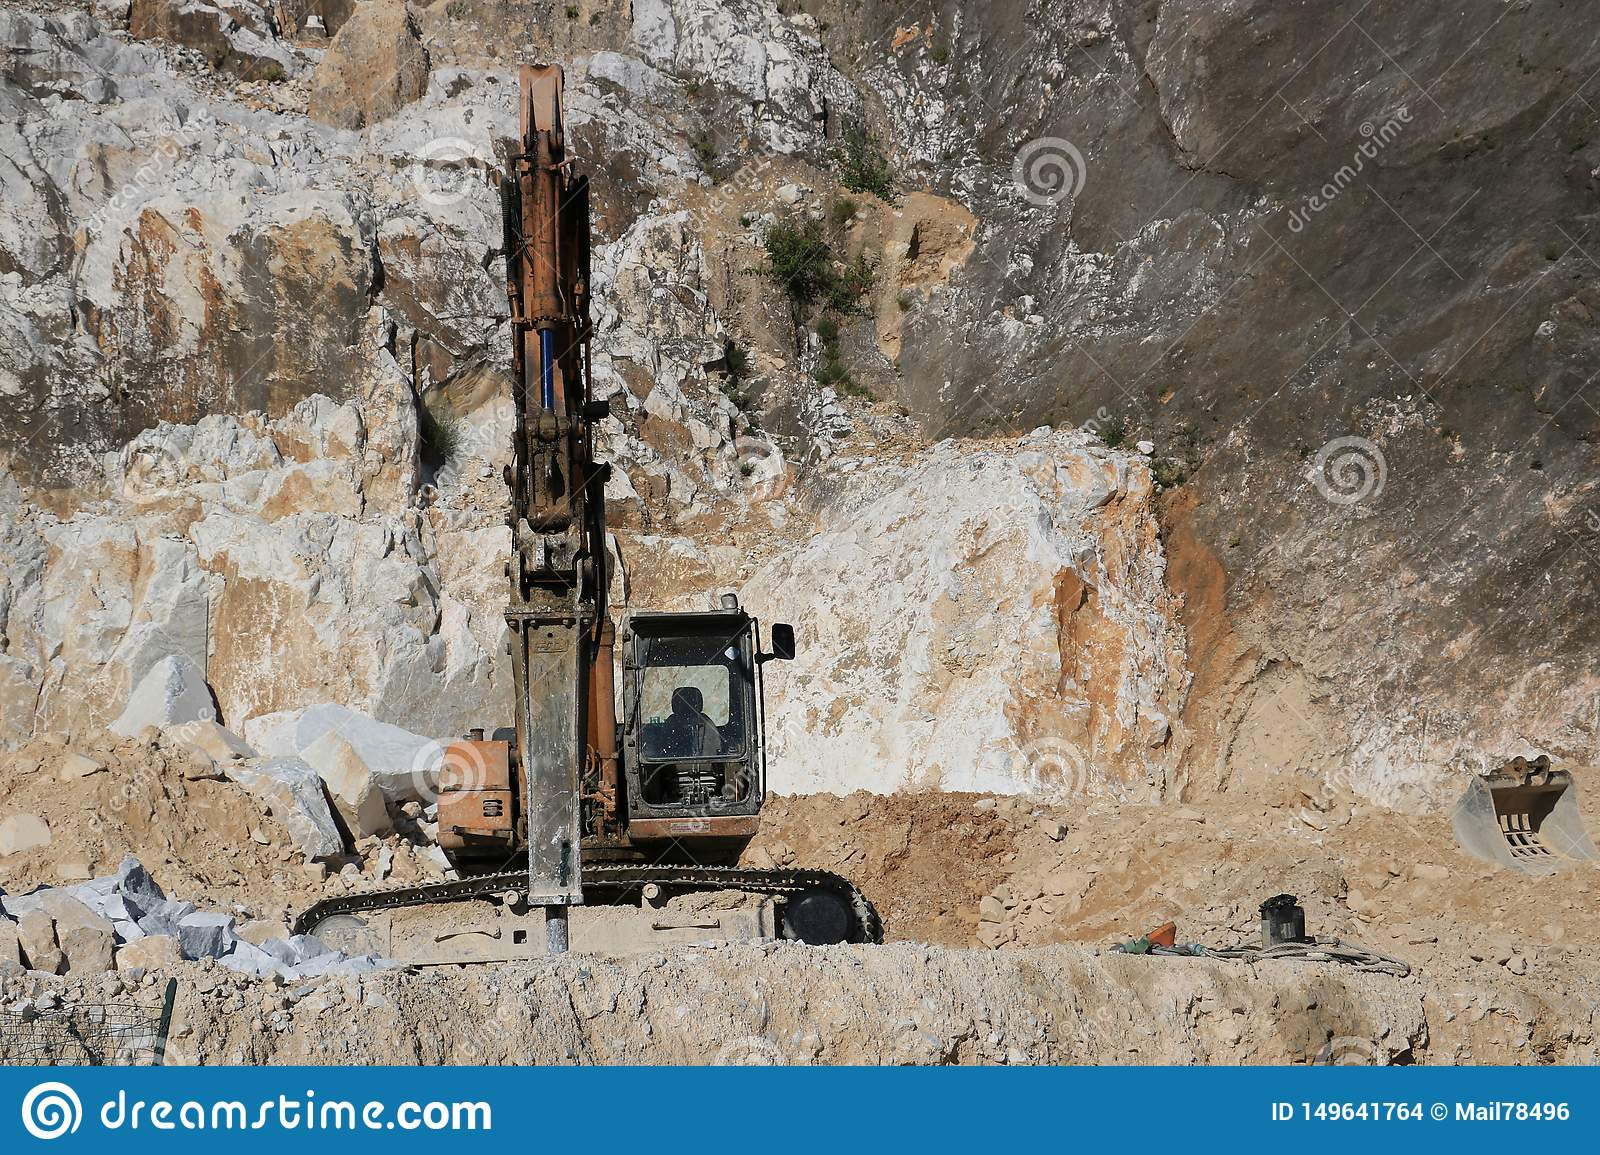 Excavator With Demolition Hammer In A Carrara Marble Quarry